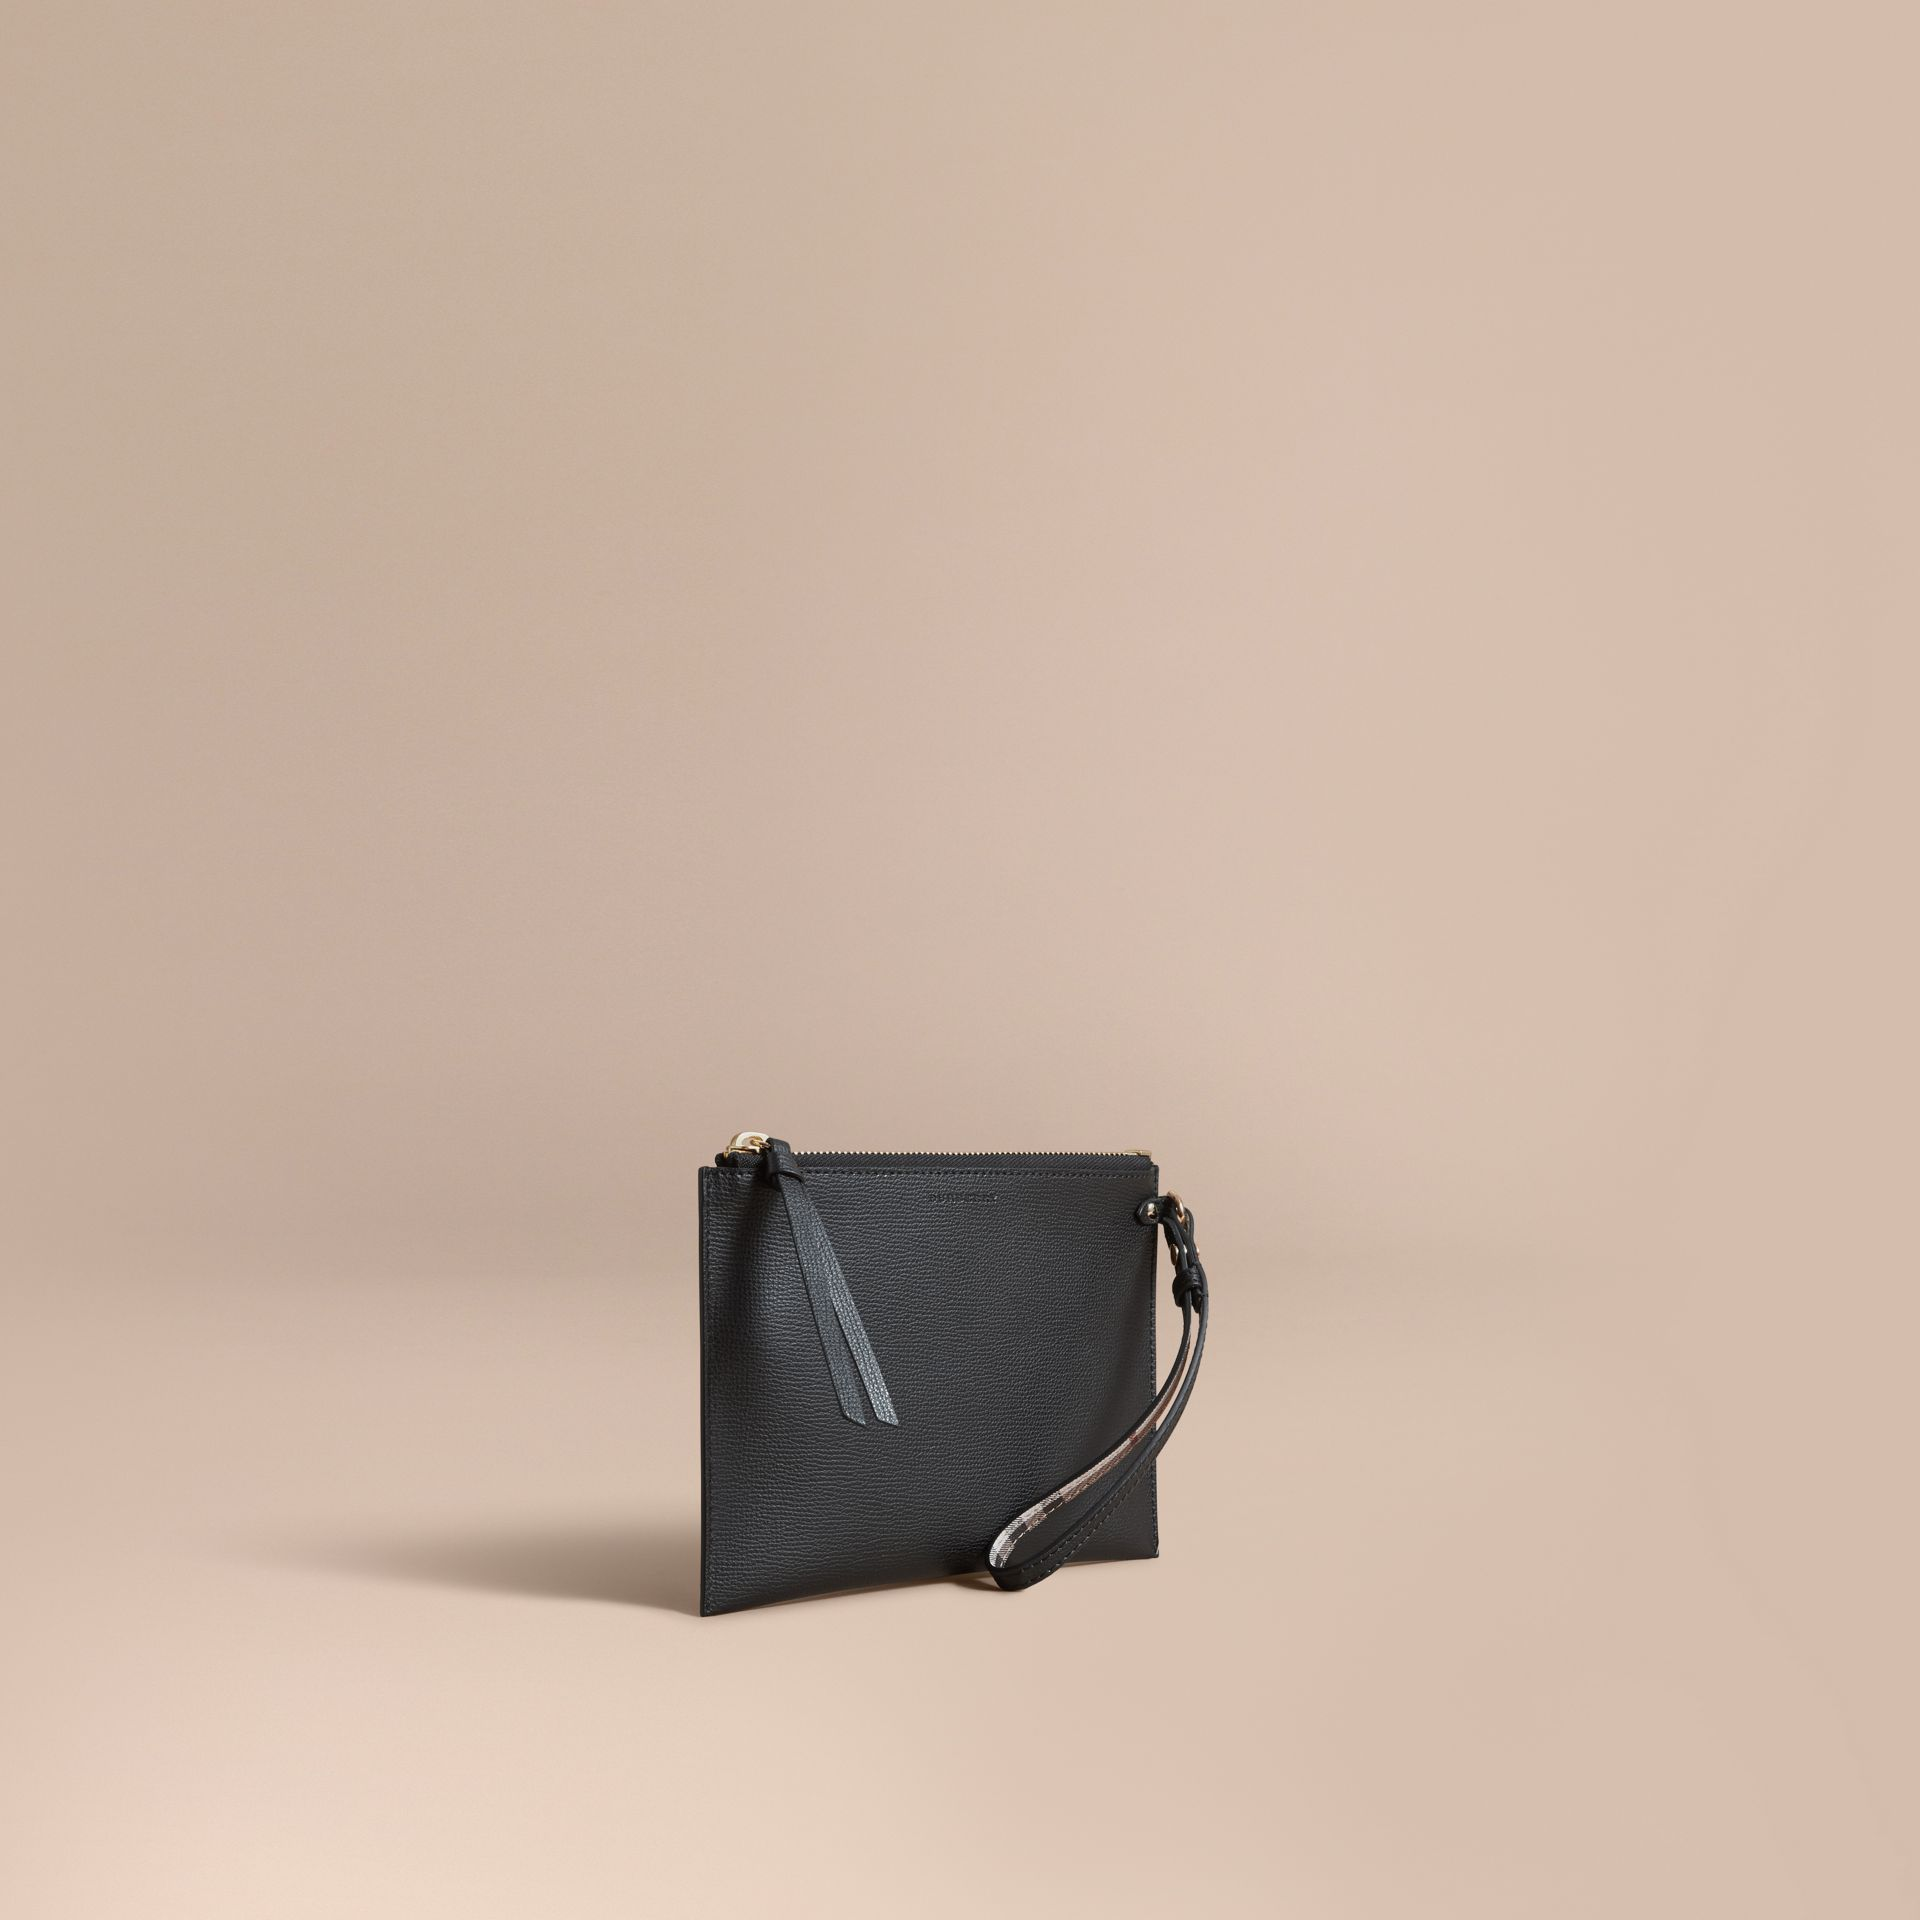 Haymarket Check and Leather Pouch in Black - Women | Burberry Australia - gallery image 1